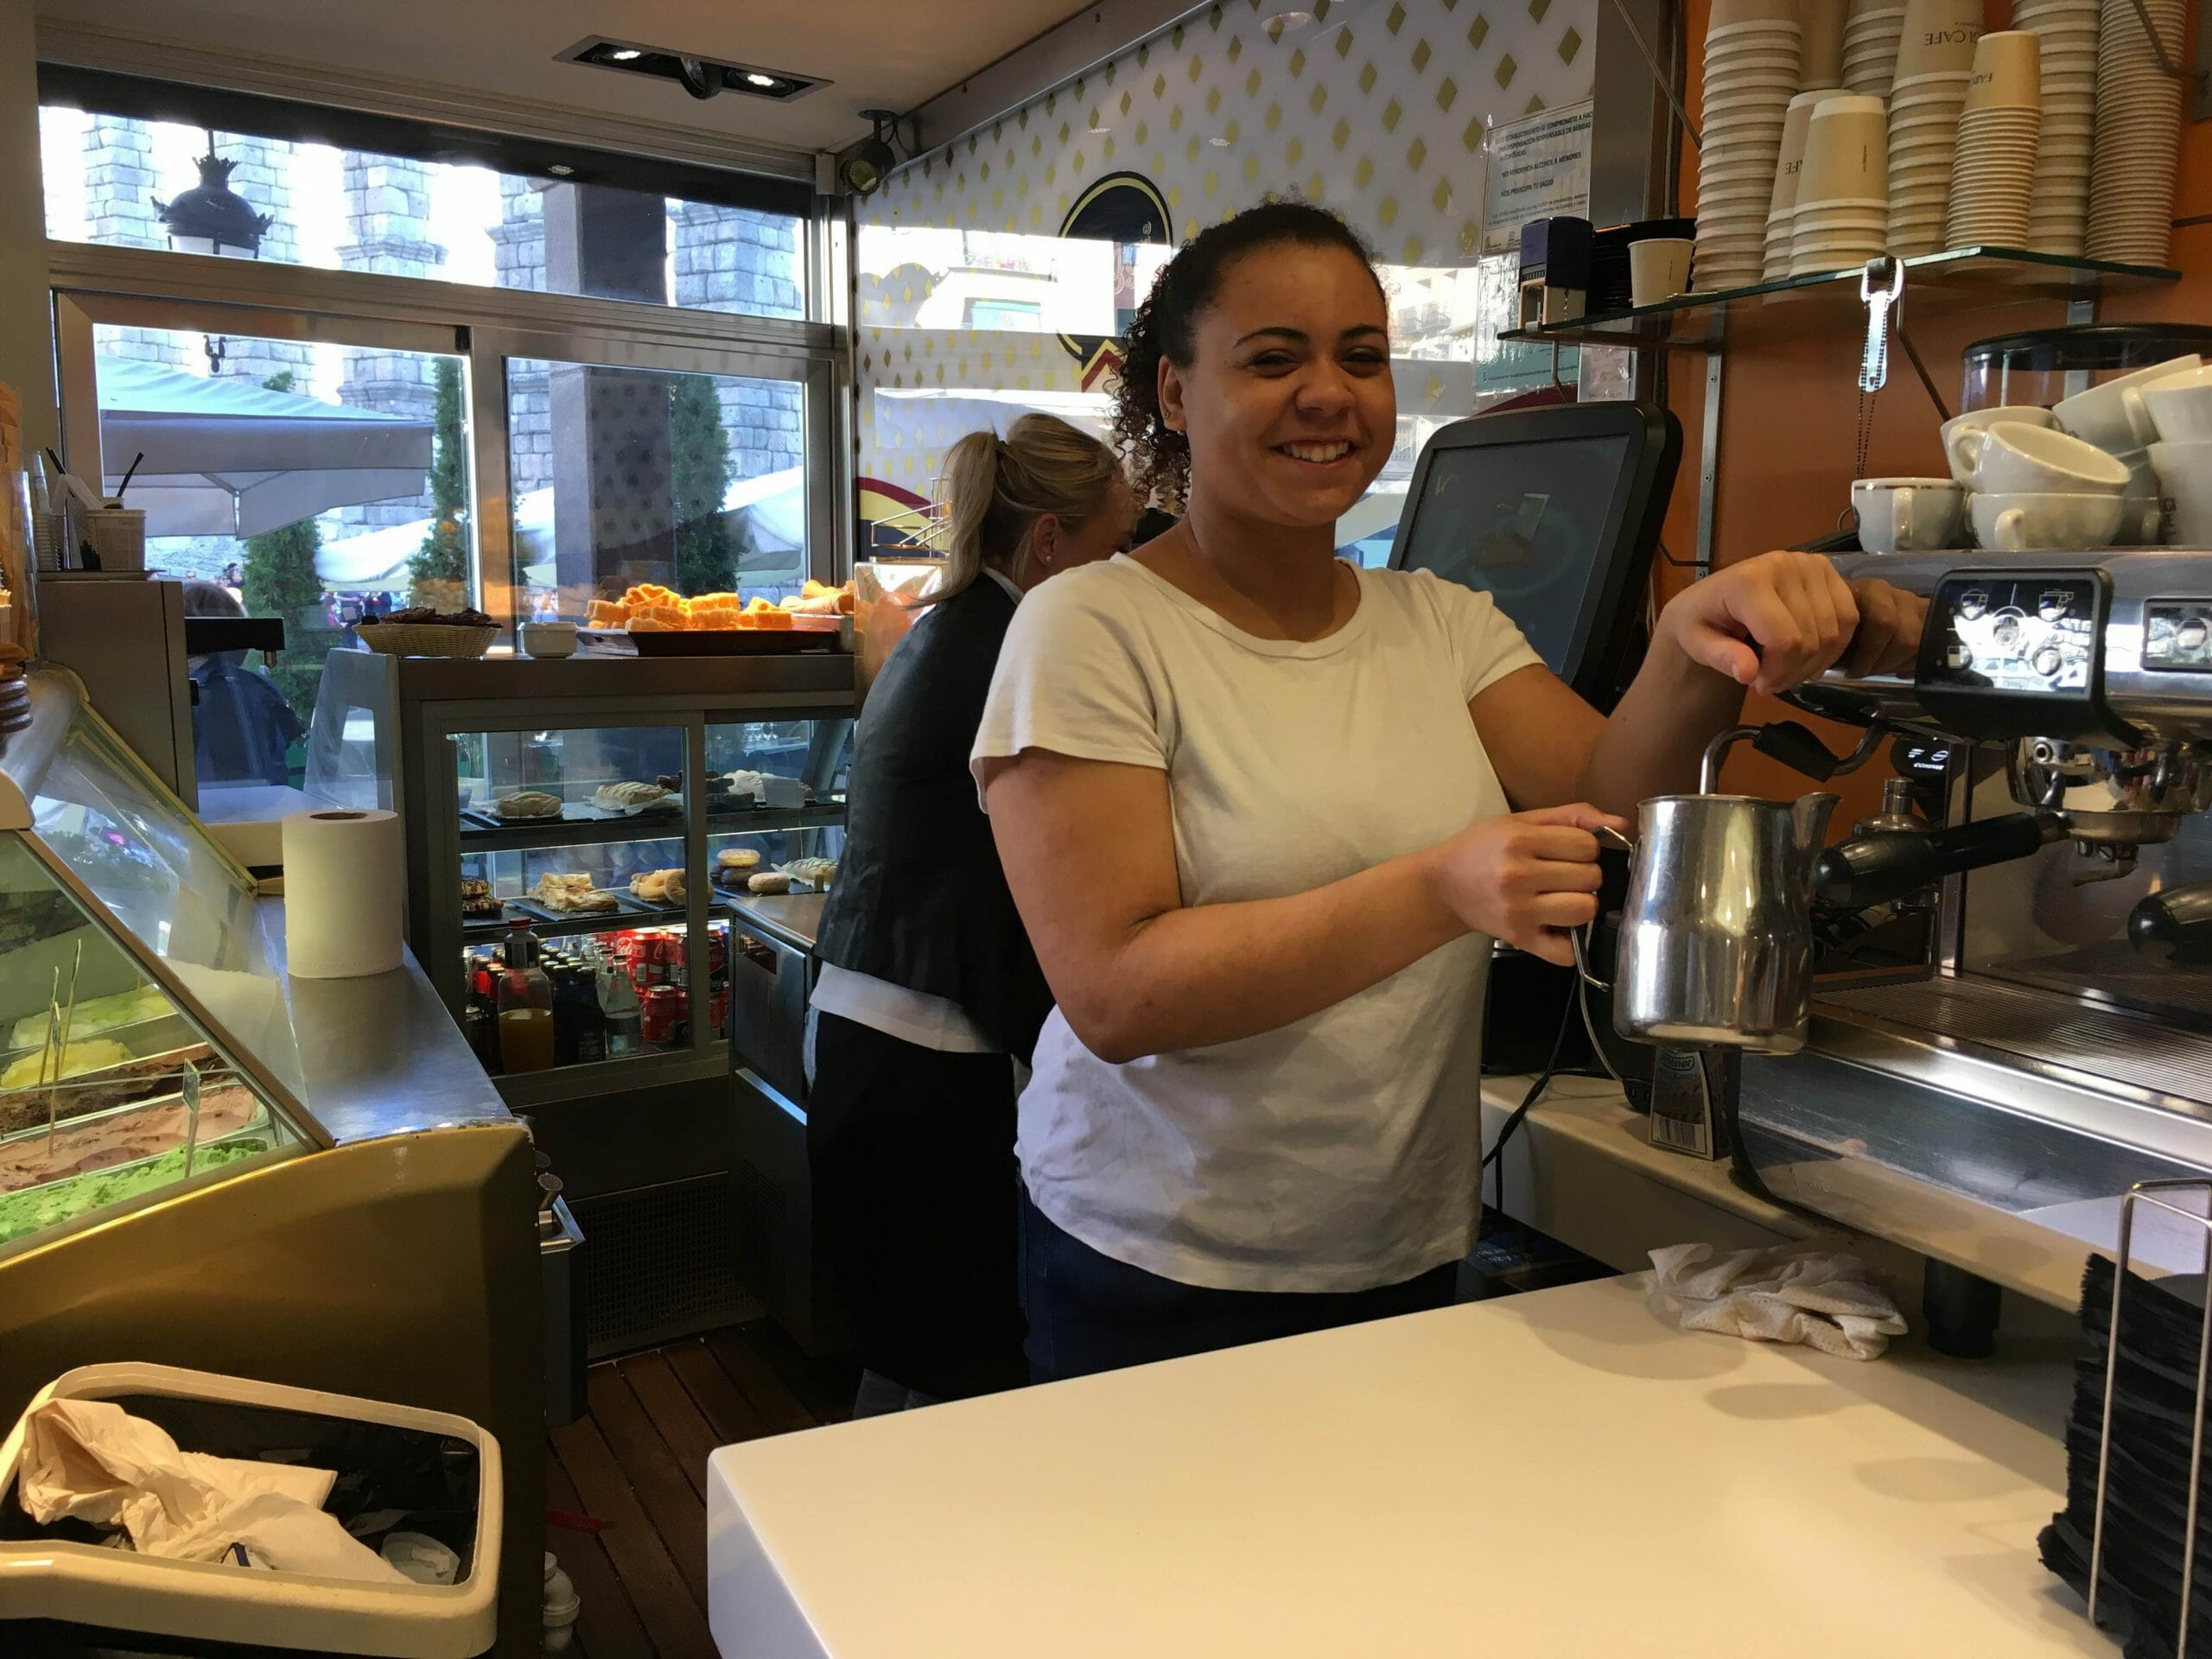 Cafe Work Experience Abroad Placement